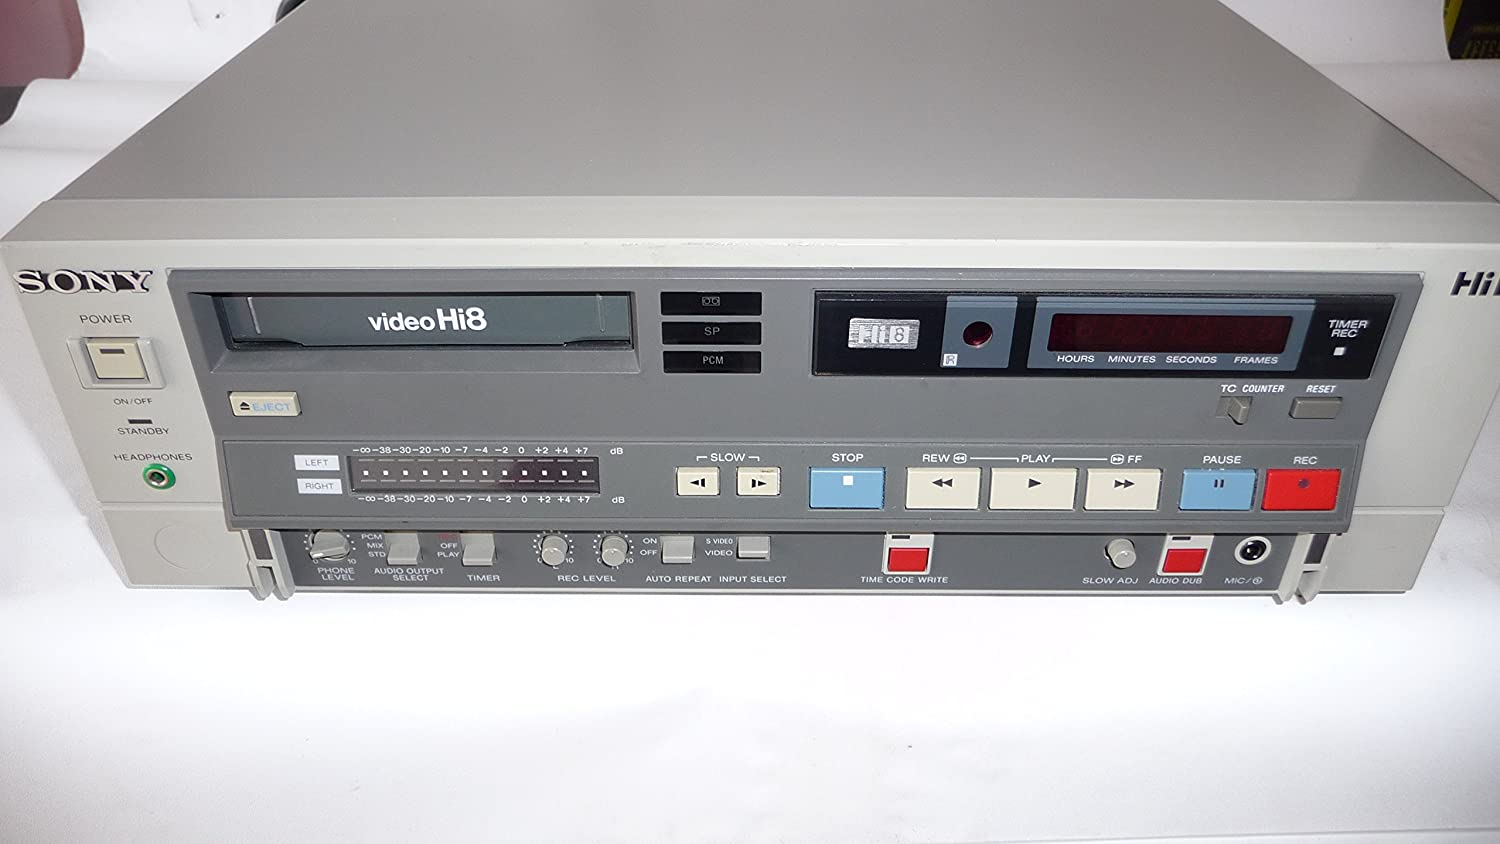 Sony Evo-9500 Professional Hi8 Video 8 VCR Top of the Line